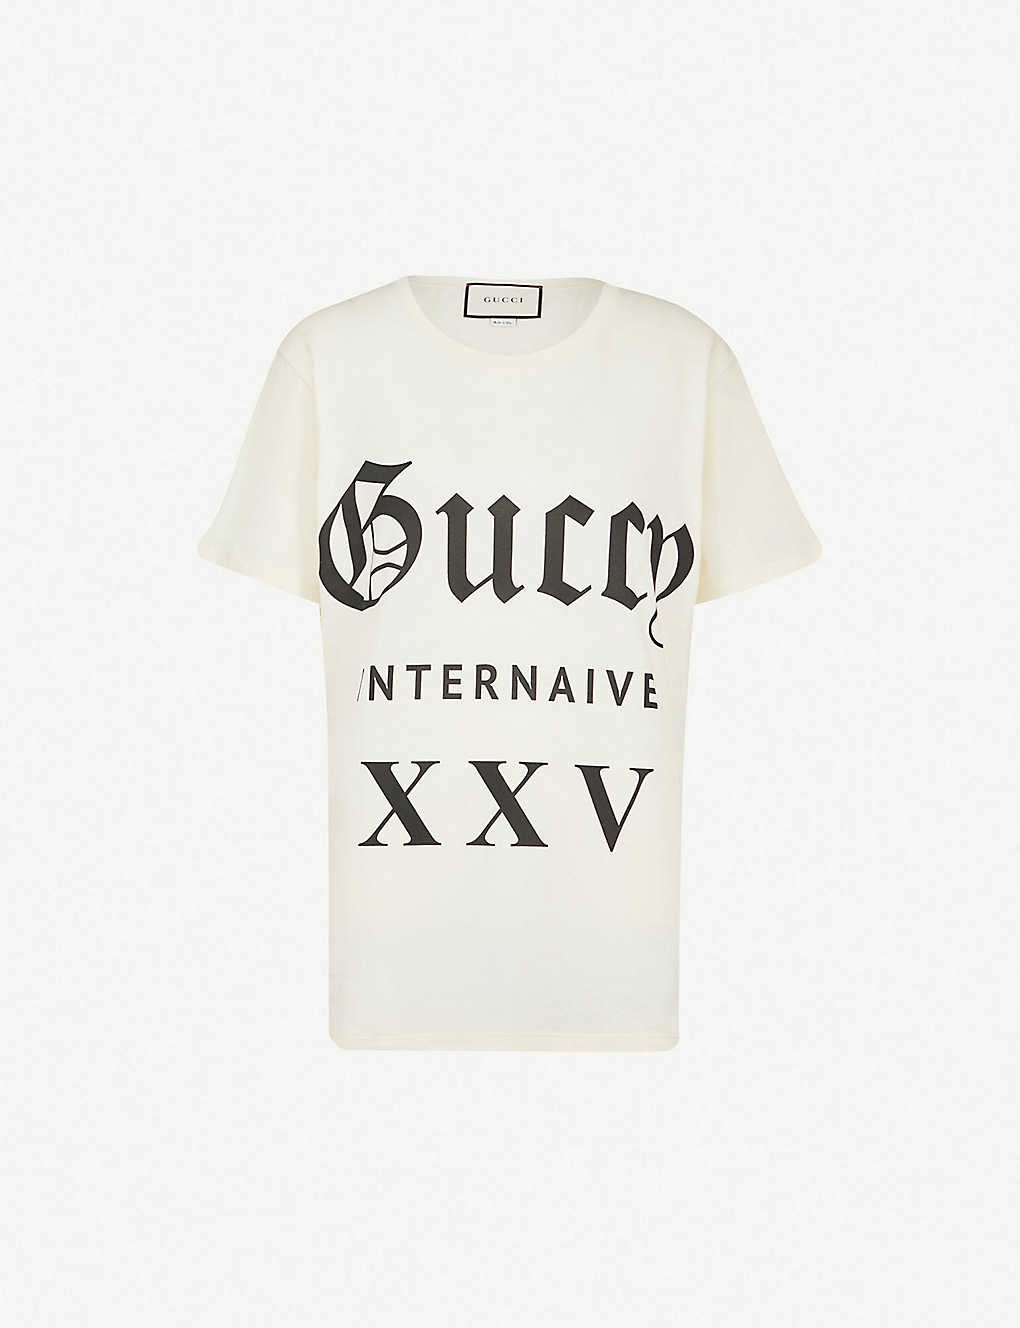 21b0c204 GUCCI - Guccy Internaive XXV cotton-jersey T-shirt | Selfridges.com